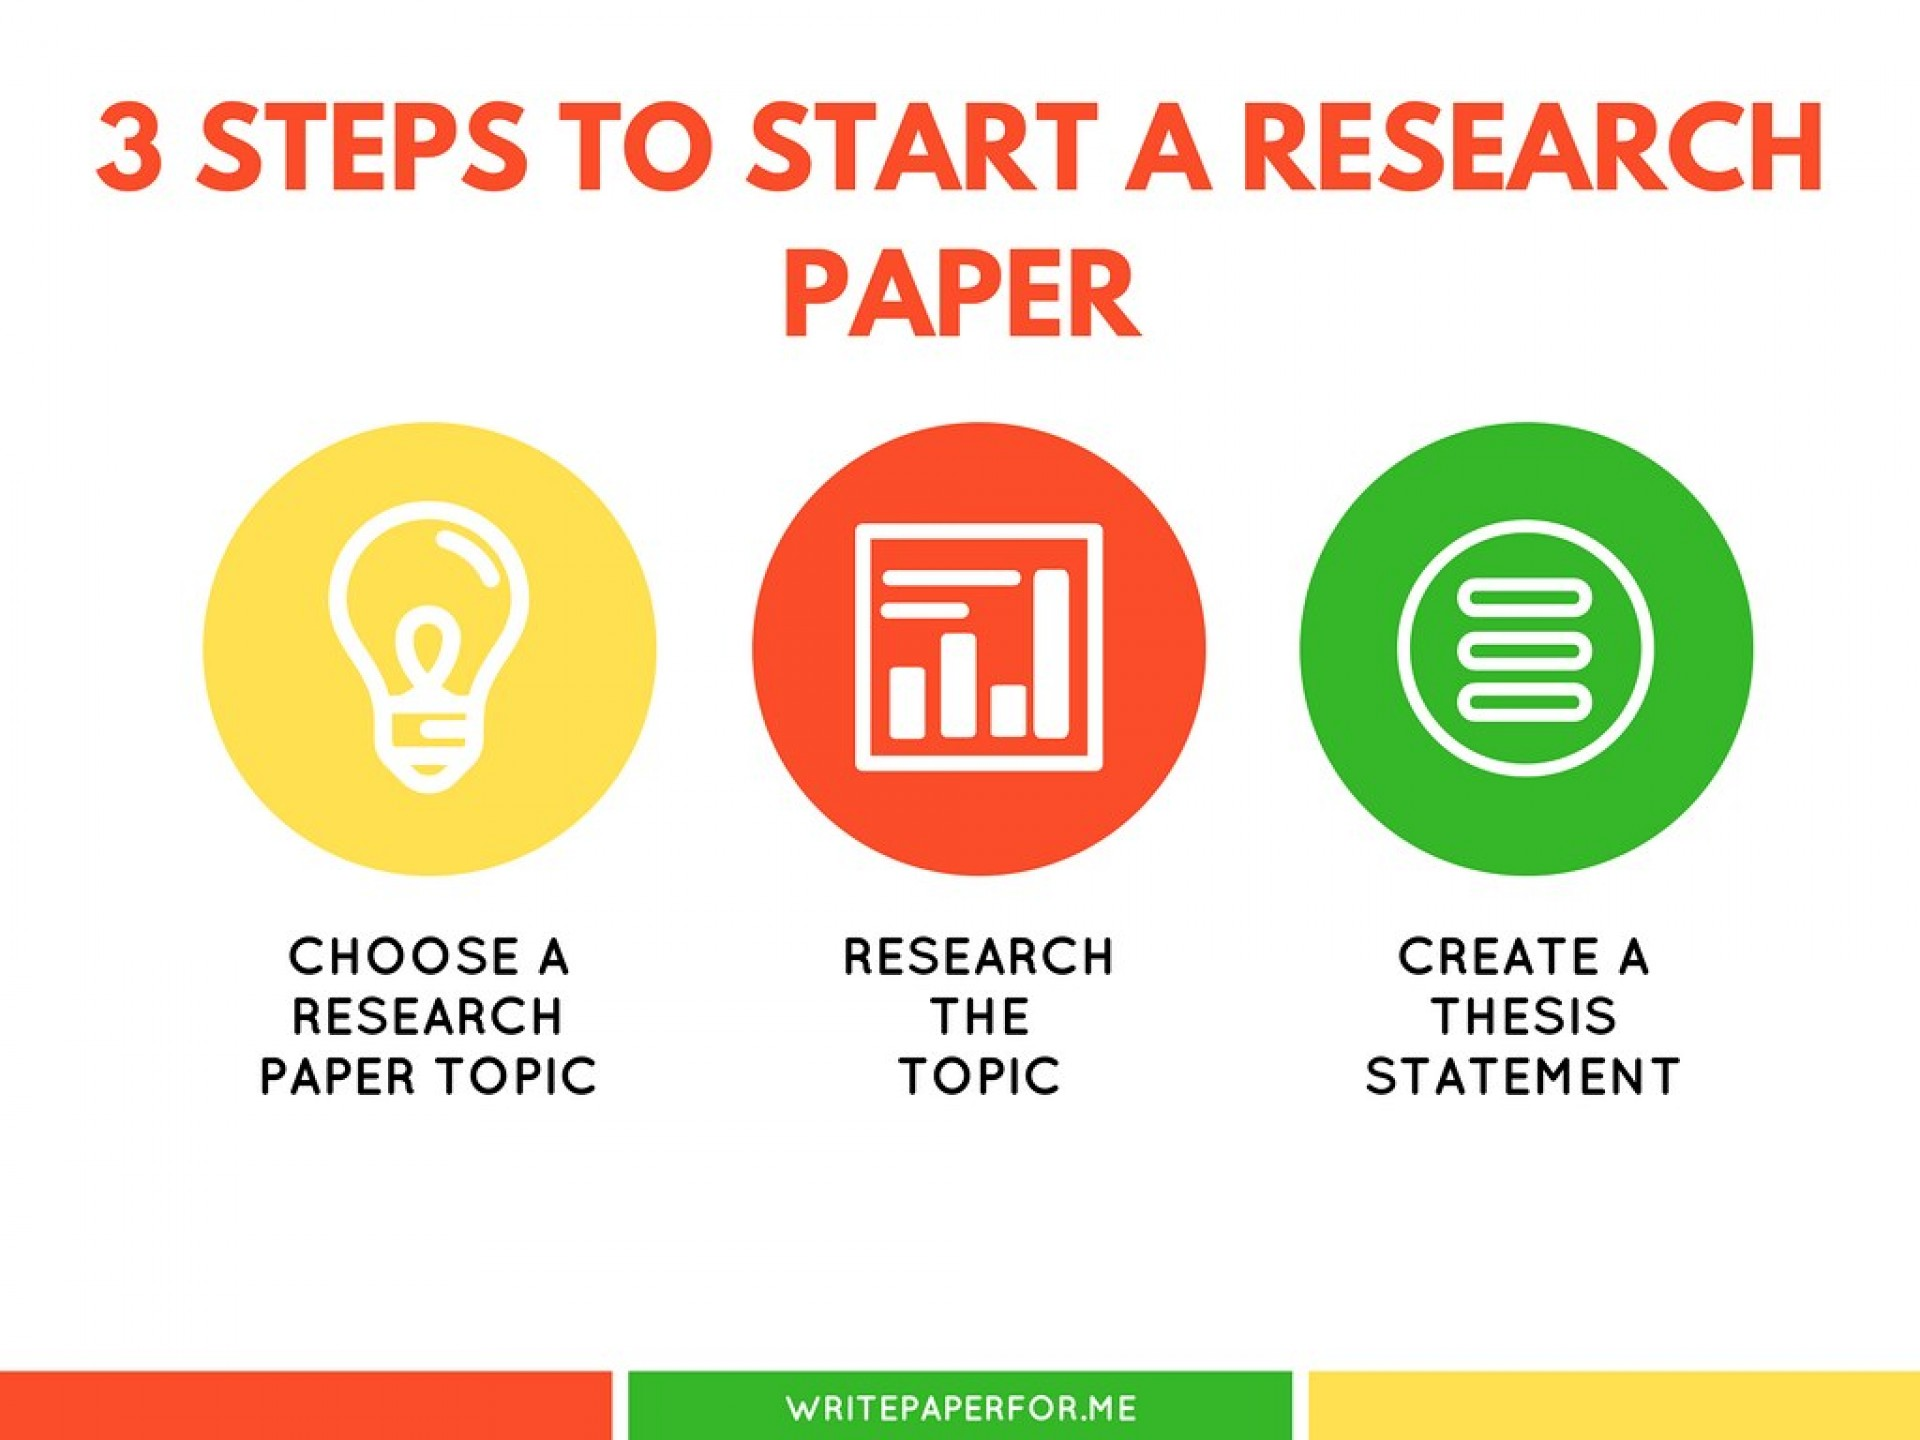 004 Research Paper 44059860914 0a9ff0d74e B How To Start Beautiful A Off Thesis Write Proposal Outline Apa 1920